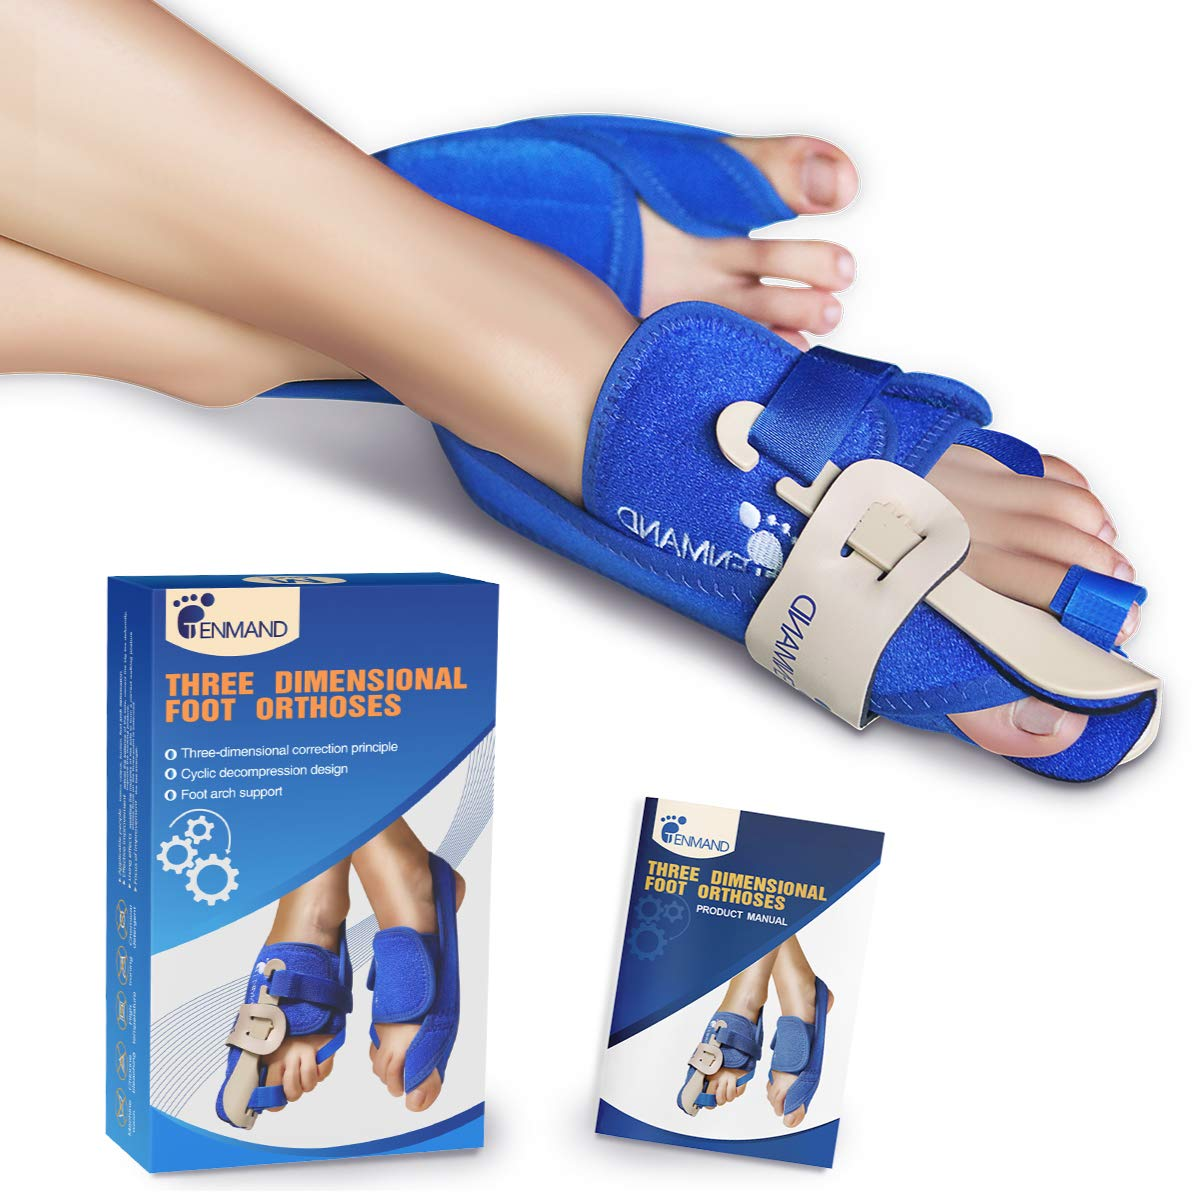 TENMAND Best Three-Dimensional Bunion Correctors and Toe Straighteners Bunion Splint for Big Toe Night Time Hallux Valgus Corrector Splints for Bunion Relief for Woman and Man (Left, Medium) by TENMAND